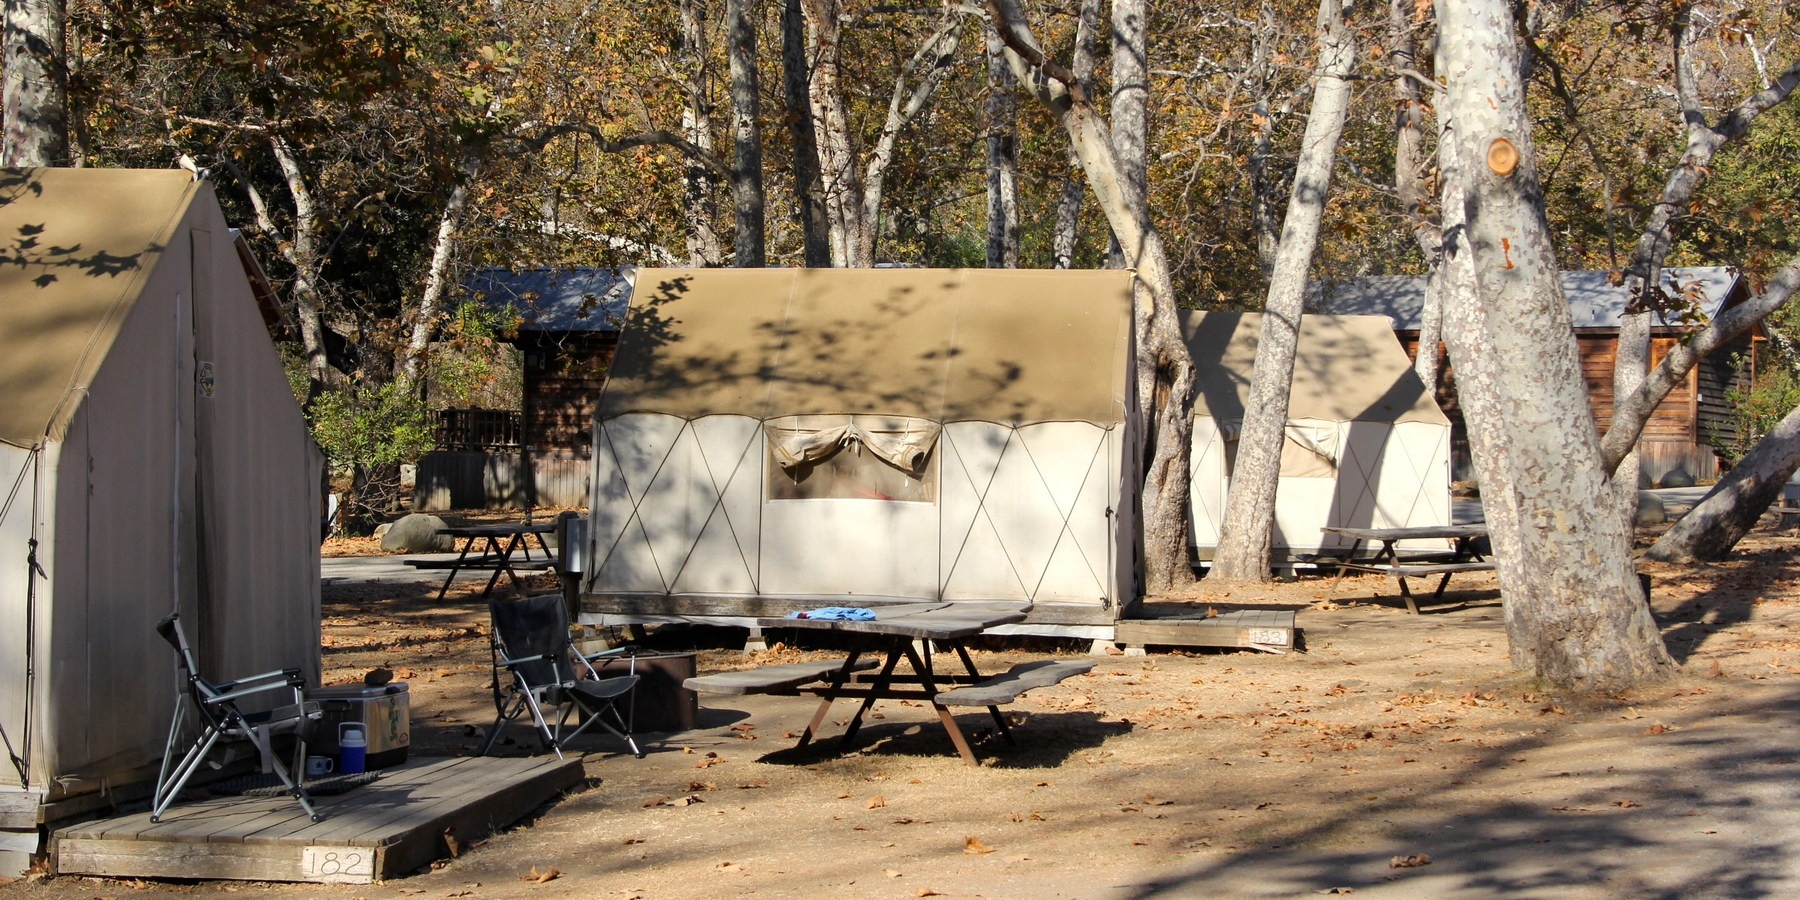 ... Safari tents underneath a grove of canyon sycamores.- El Capitan Canyon Nature Resort ... & El Capitan Canyon Nature Resort | Outdoor Project